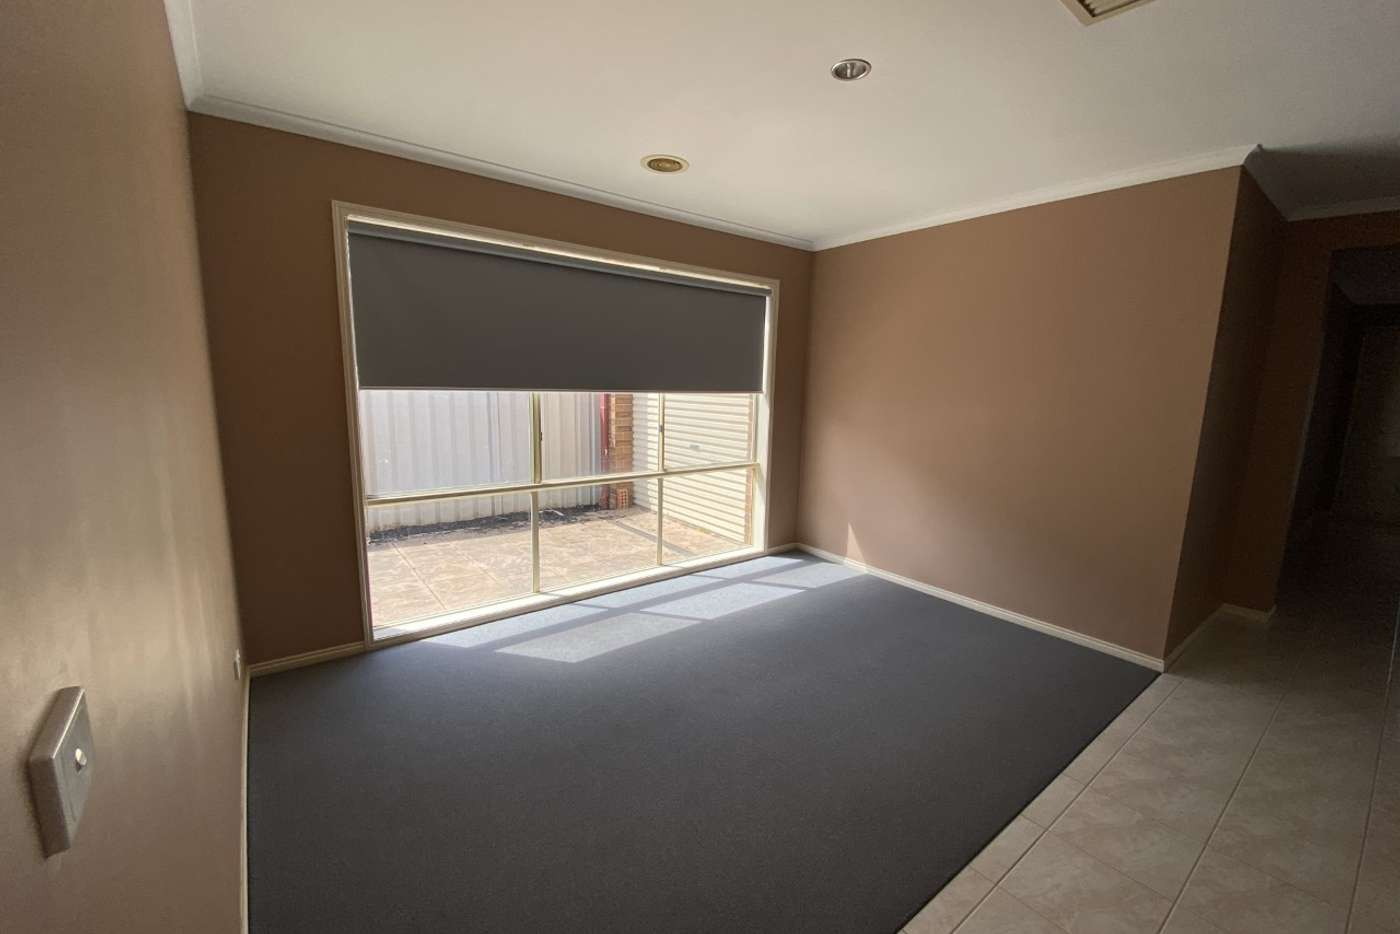 Seventh view of Homely house listing, 7 Innes Place, Caroline Springs VIC 3023